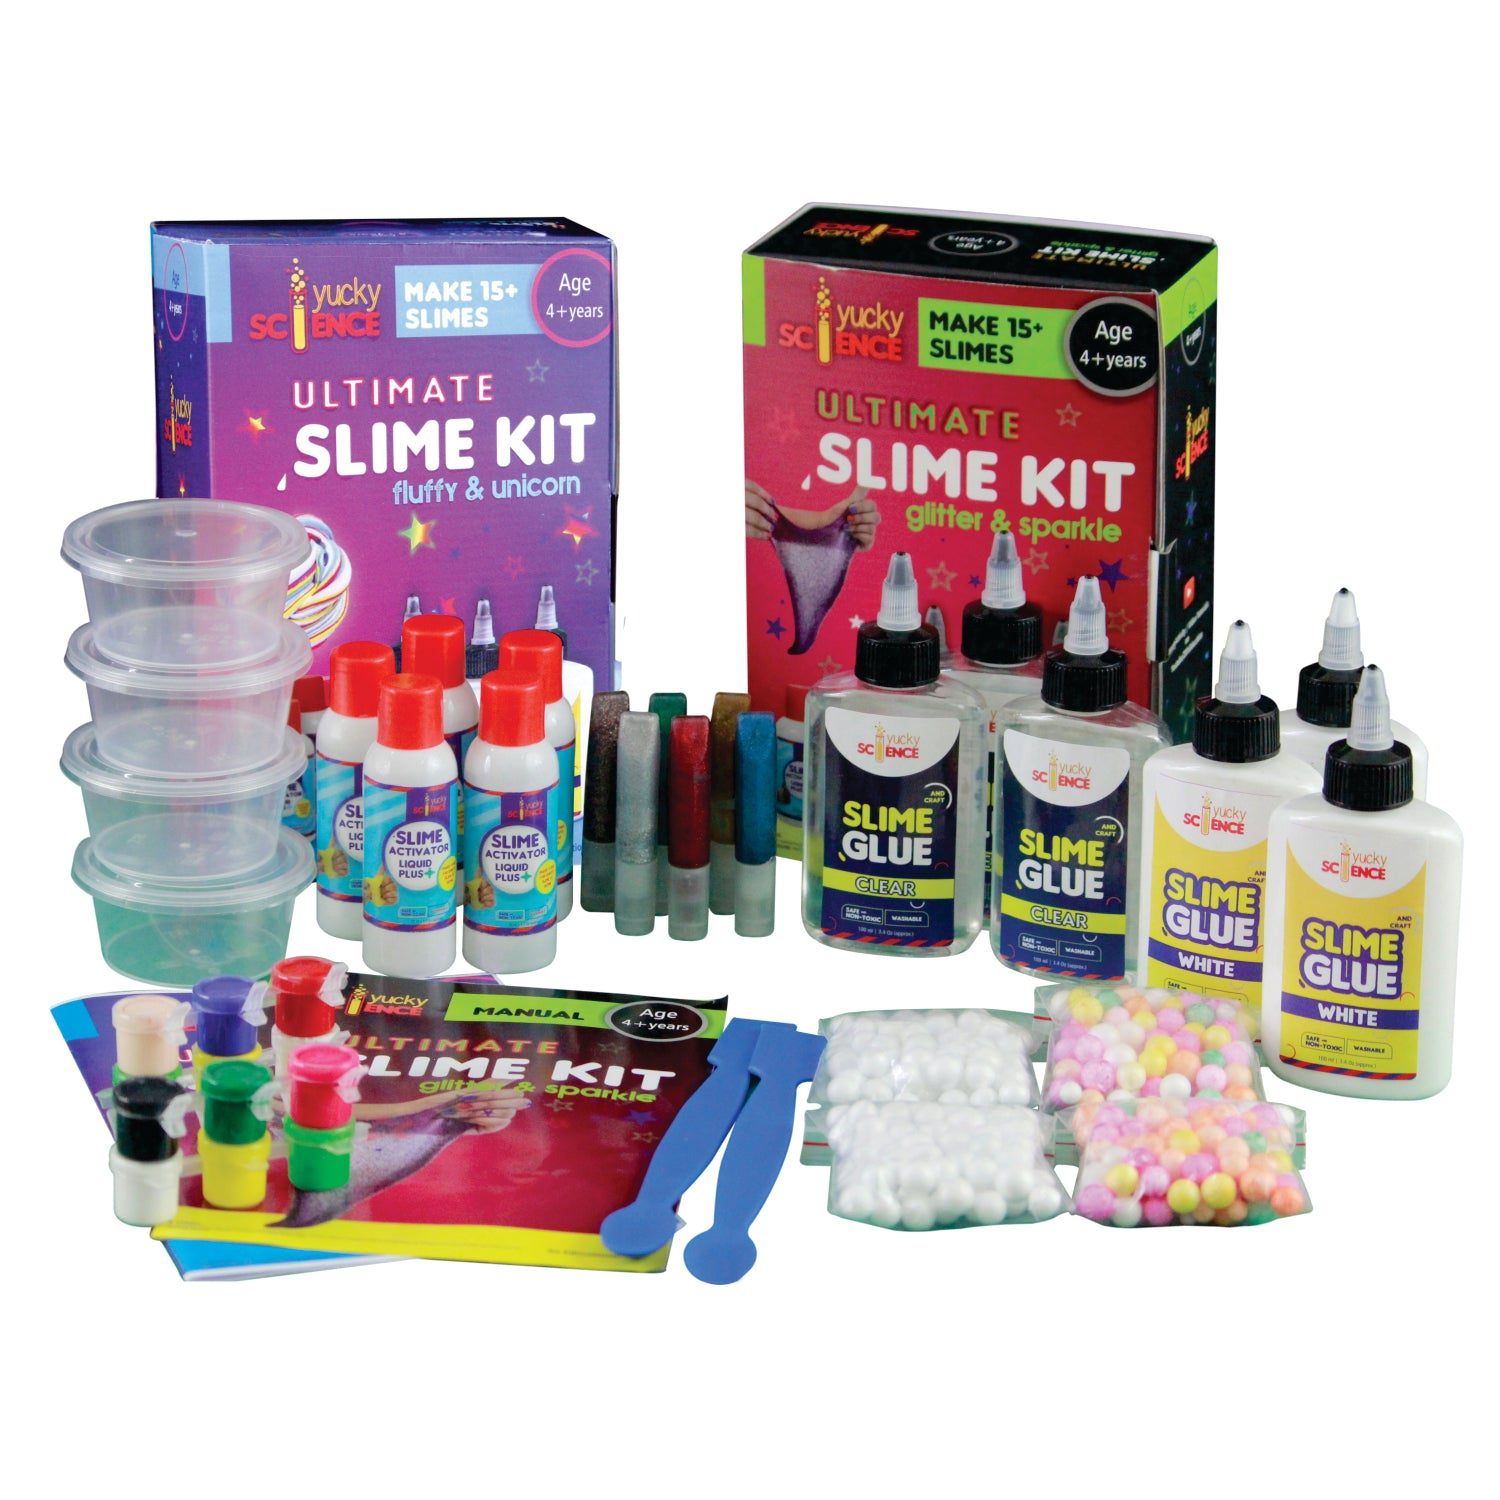 41 Pieces Ultimate Slime Making Kit for kids Combo Pack of 2 - Glitter & Sparkle. Unicorn & Fluffy.